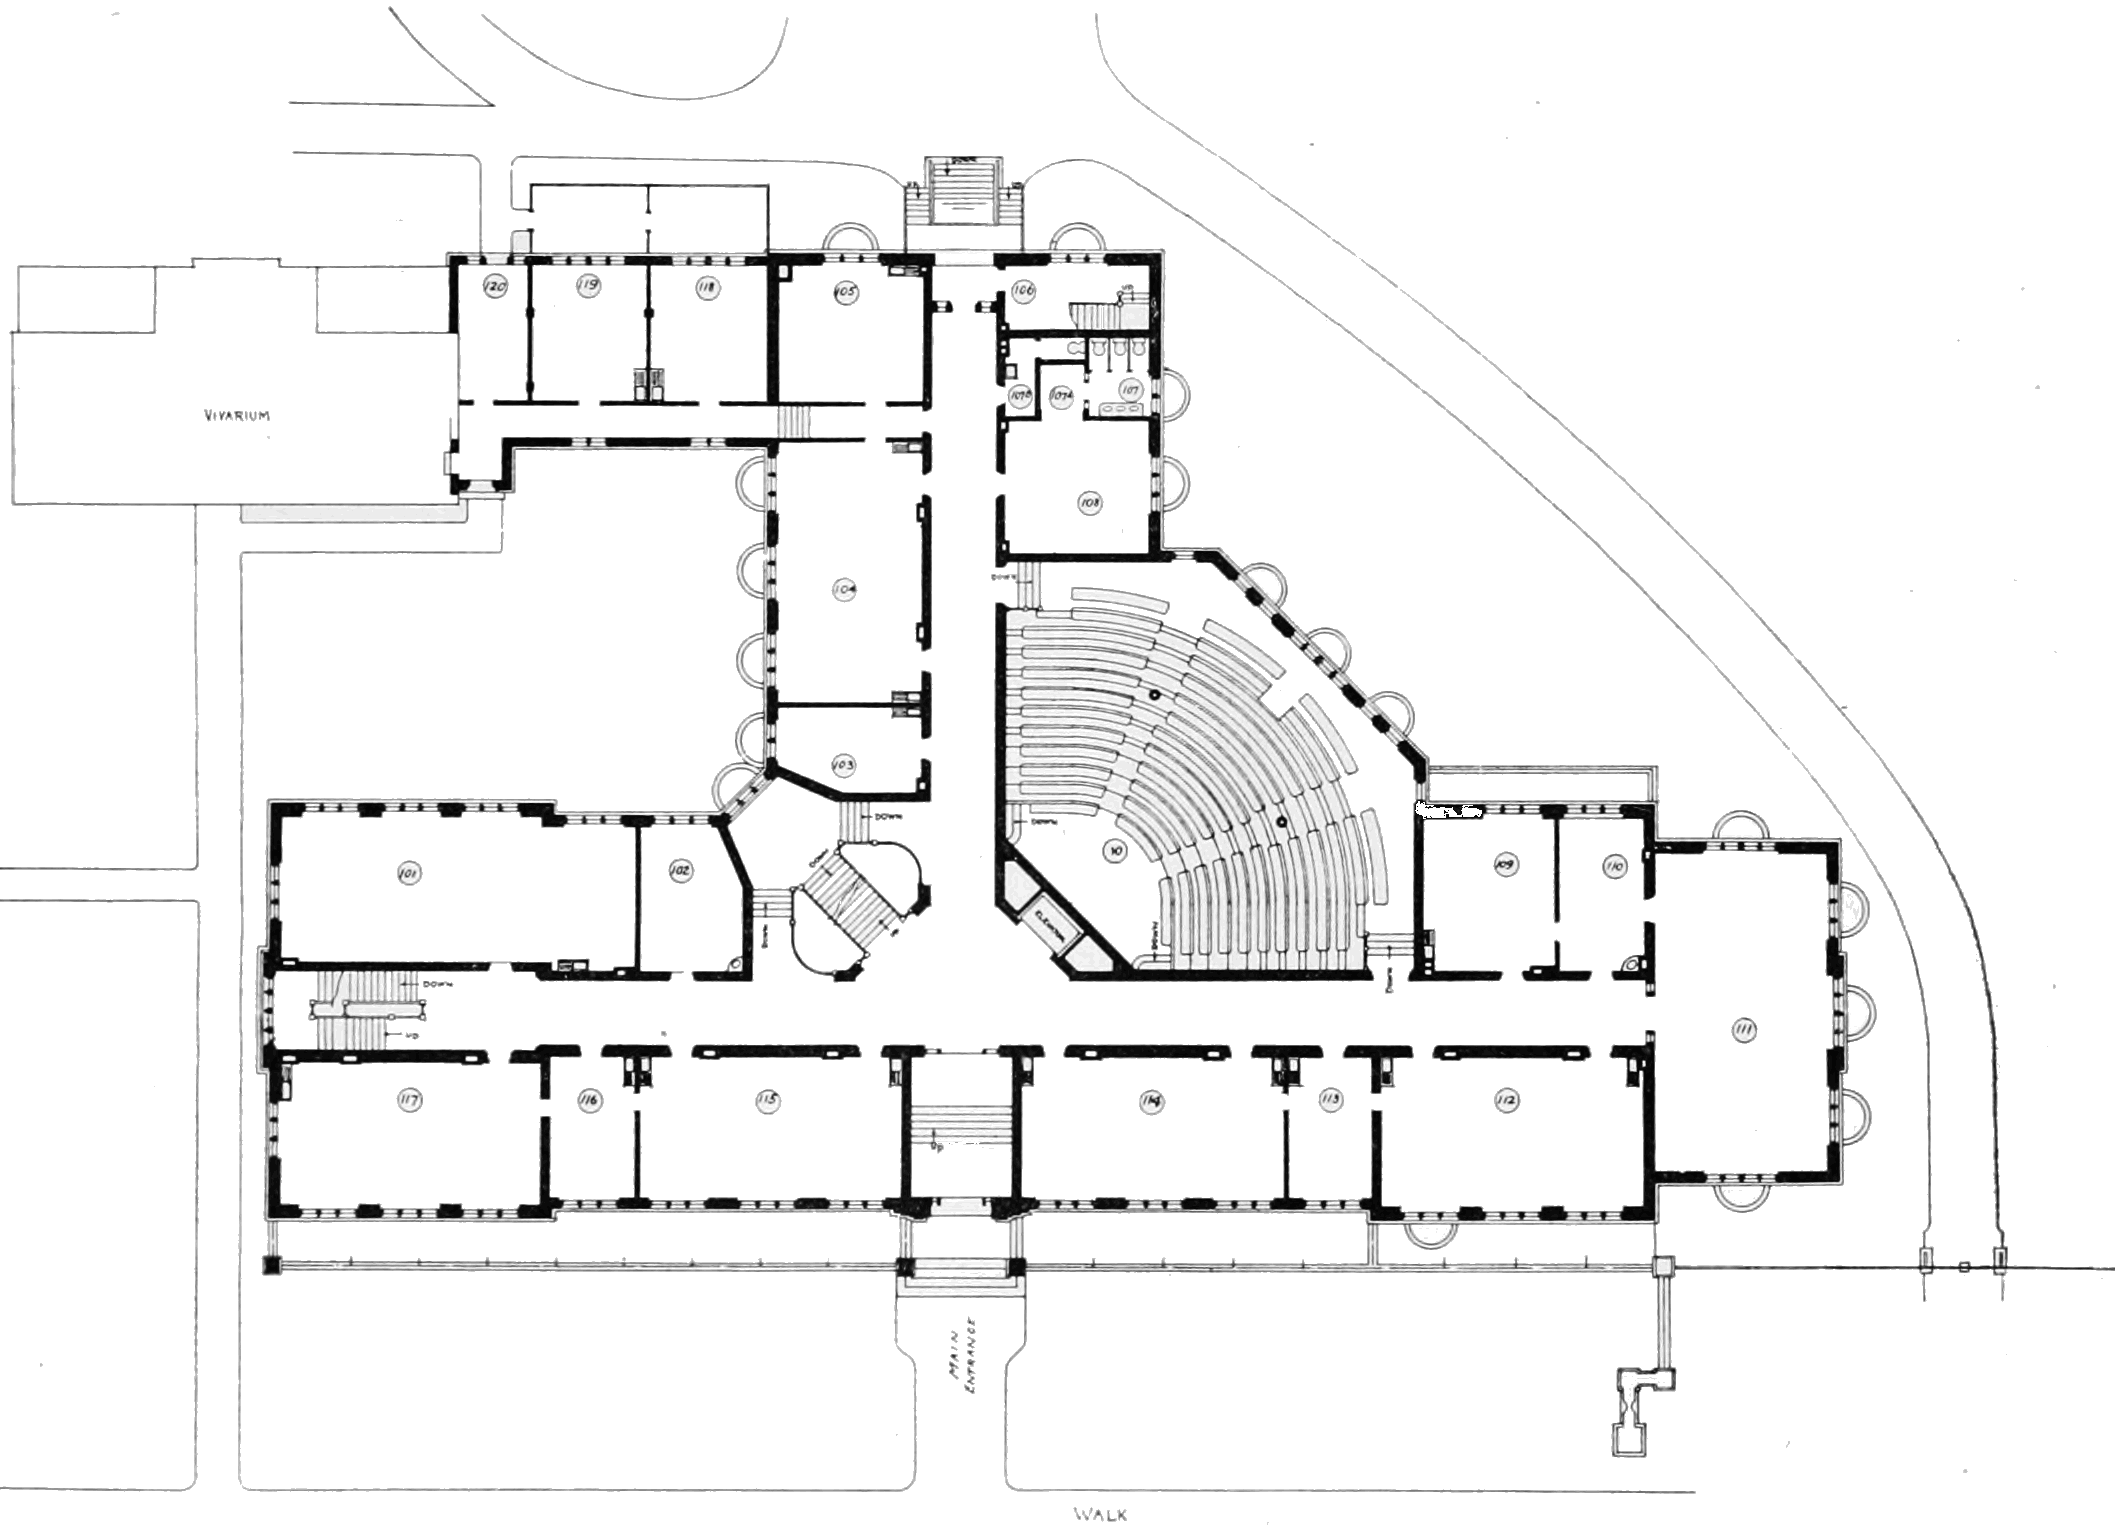 Commercial Building Floor Plans Free File Psm V79 D623 First Floor Plan Of The Zoological Lab